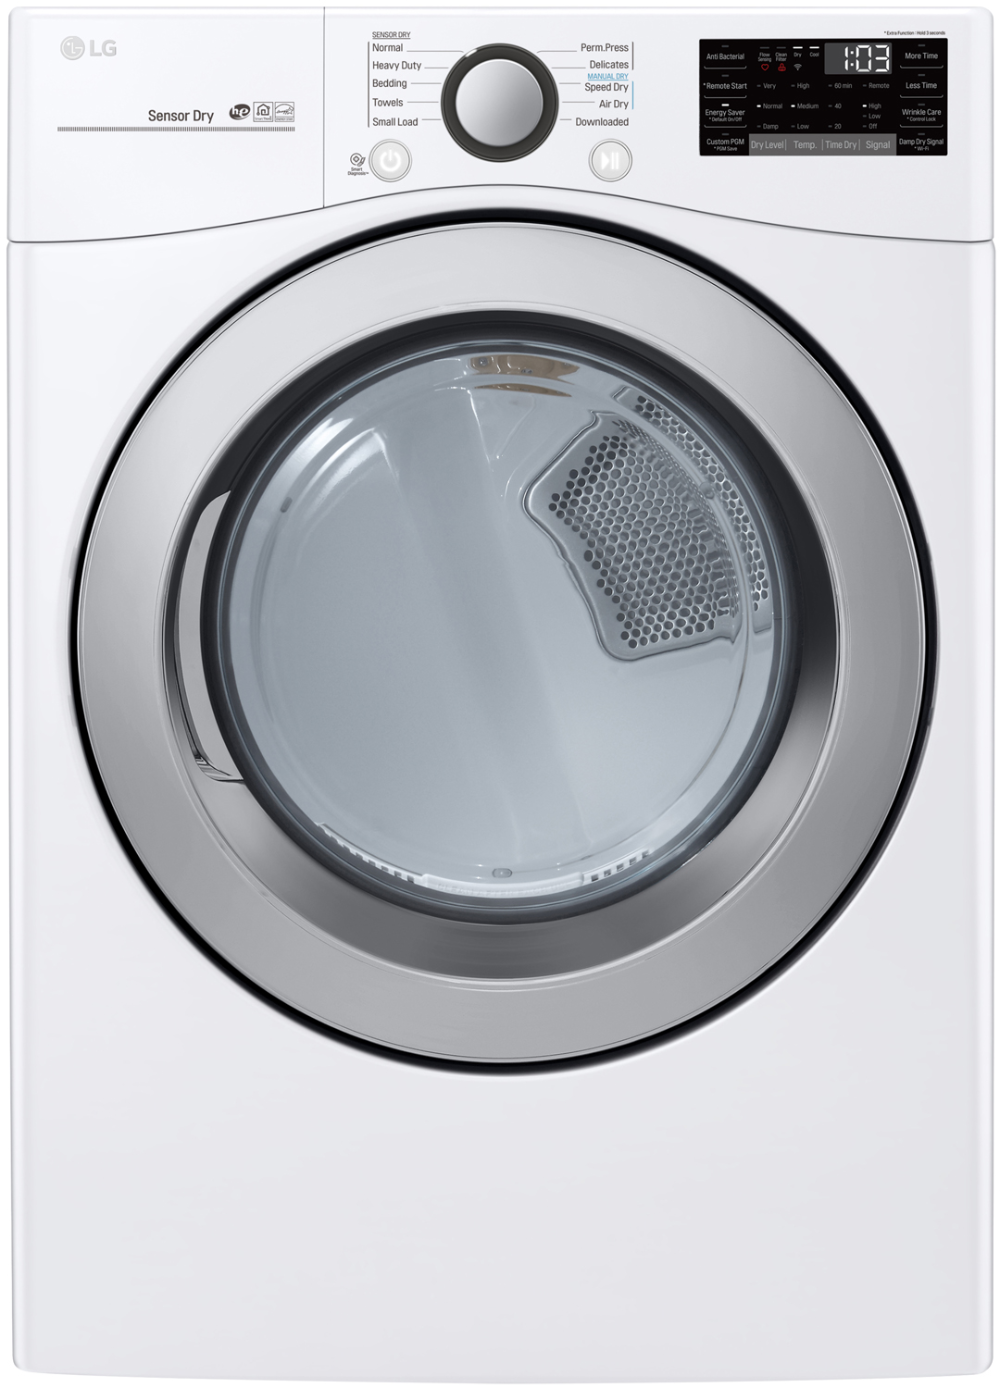 LG White Ultra Large Capacity Electric Smart WiFi Dryer